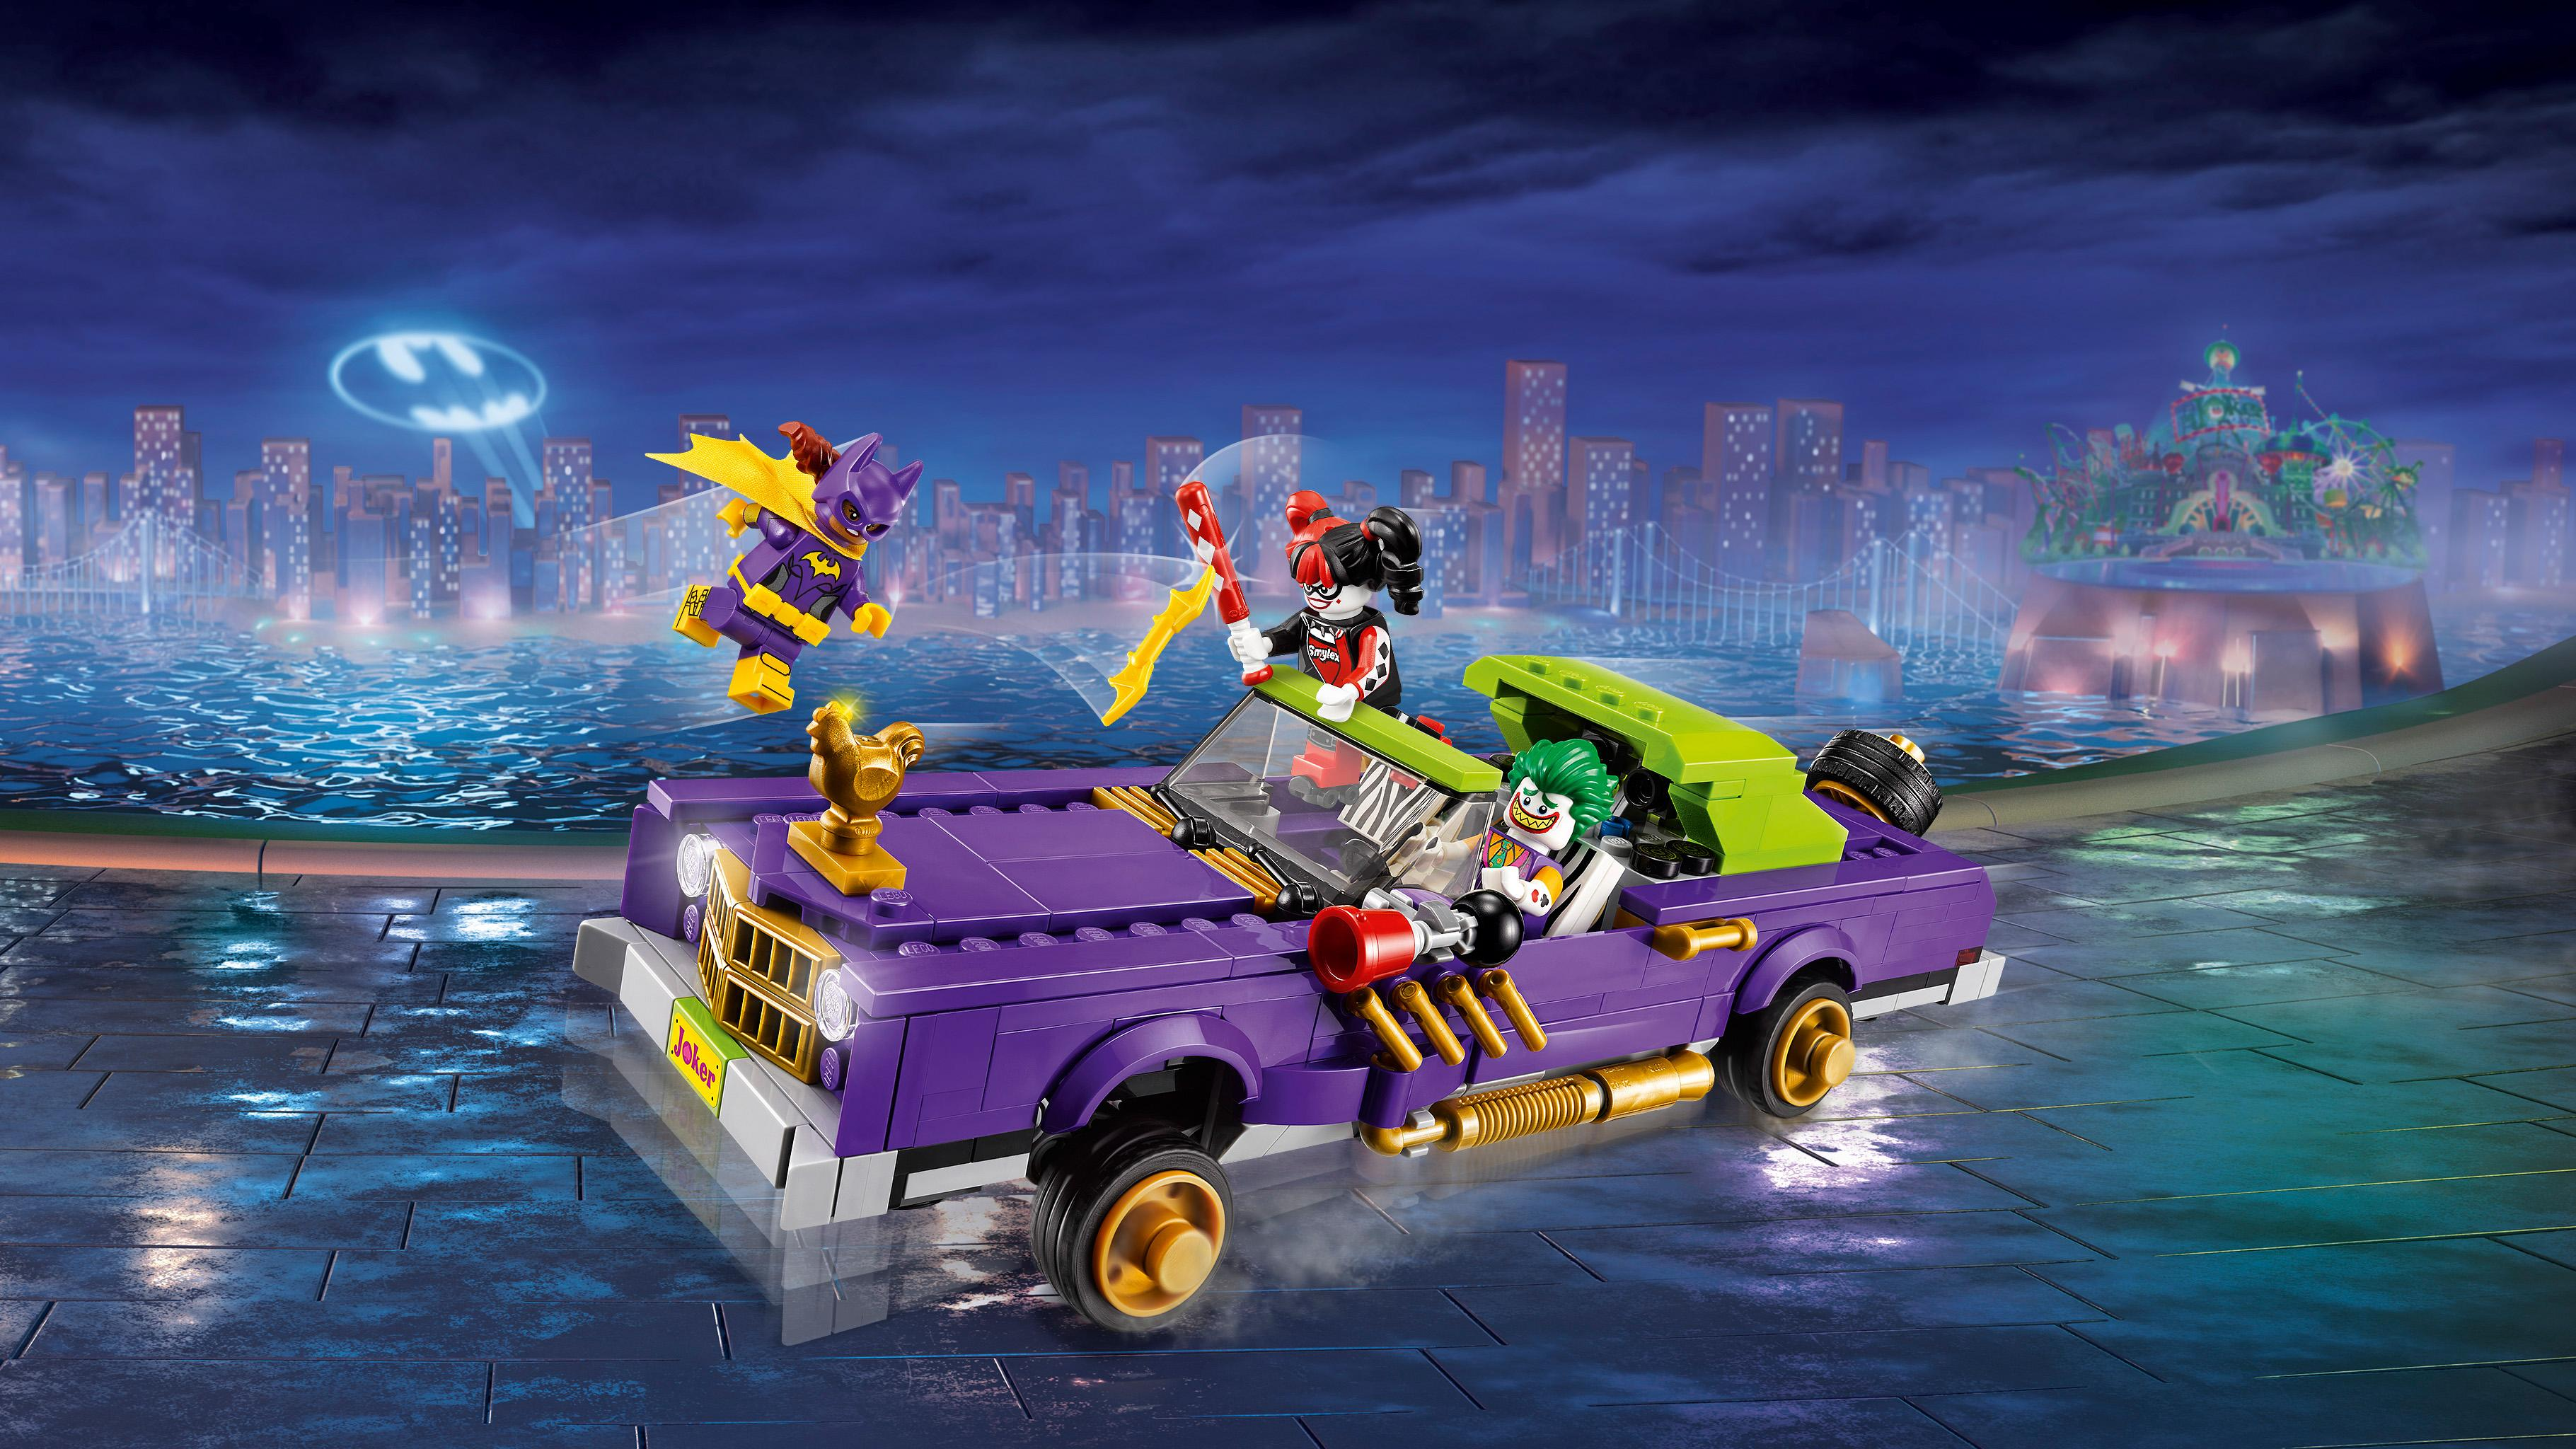 Joker Notorious Lowrider 70906 Building Kit (433 Piece): Toys & Games